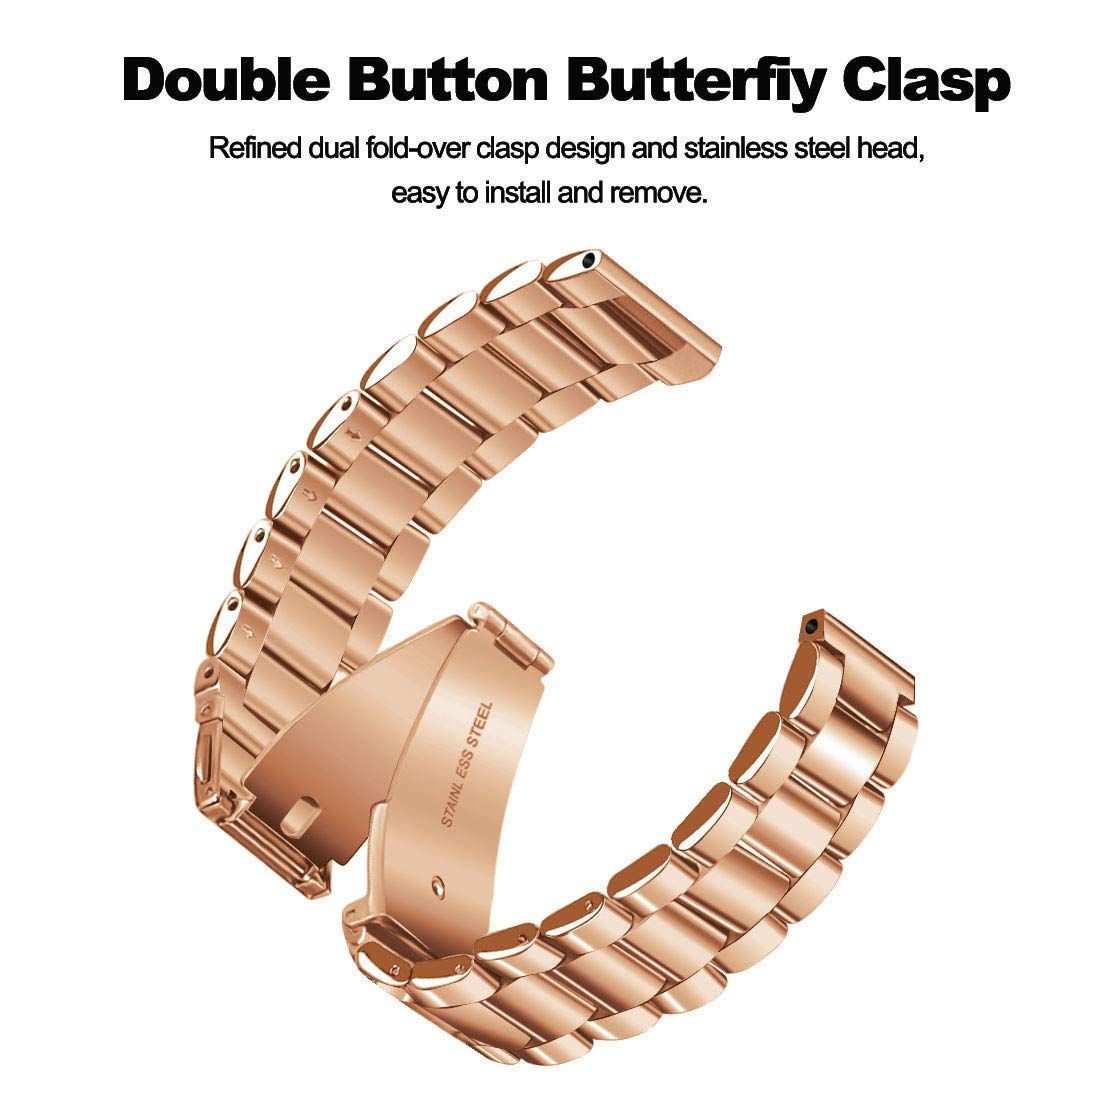 CAGOS Compatible Galaxy Watch 42mm/Galaxy Watch Active Bands Sets, 20mm 2 Pack Stainless Steel Band+Milanese Loop Mesh Bracelet for Samsung Galaxy Watch 42mm /Ticwatch E Smartwatch - Rose Gold by CAGOS (Image #5)